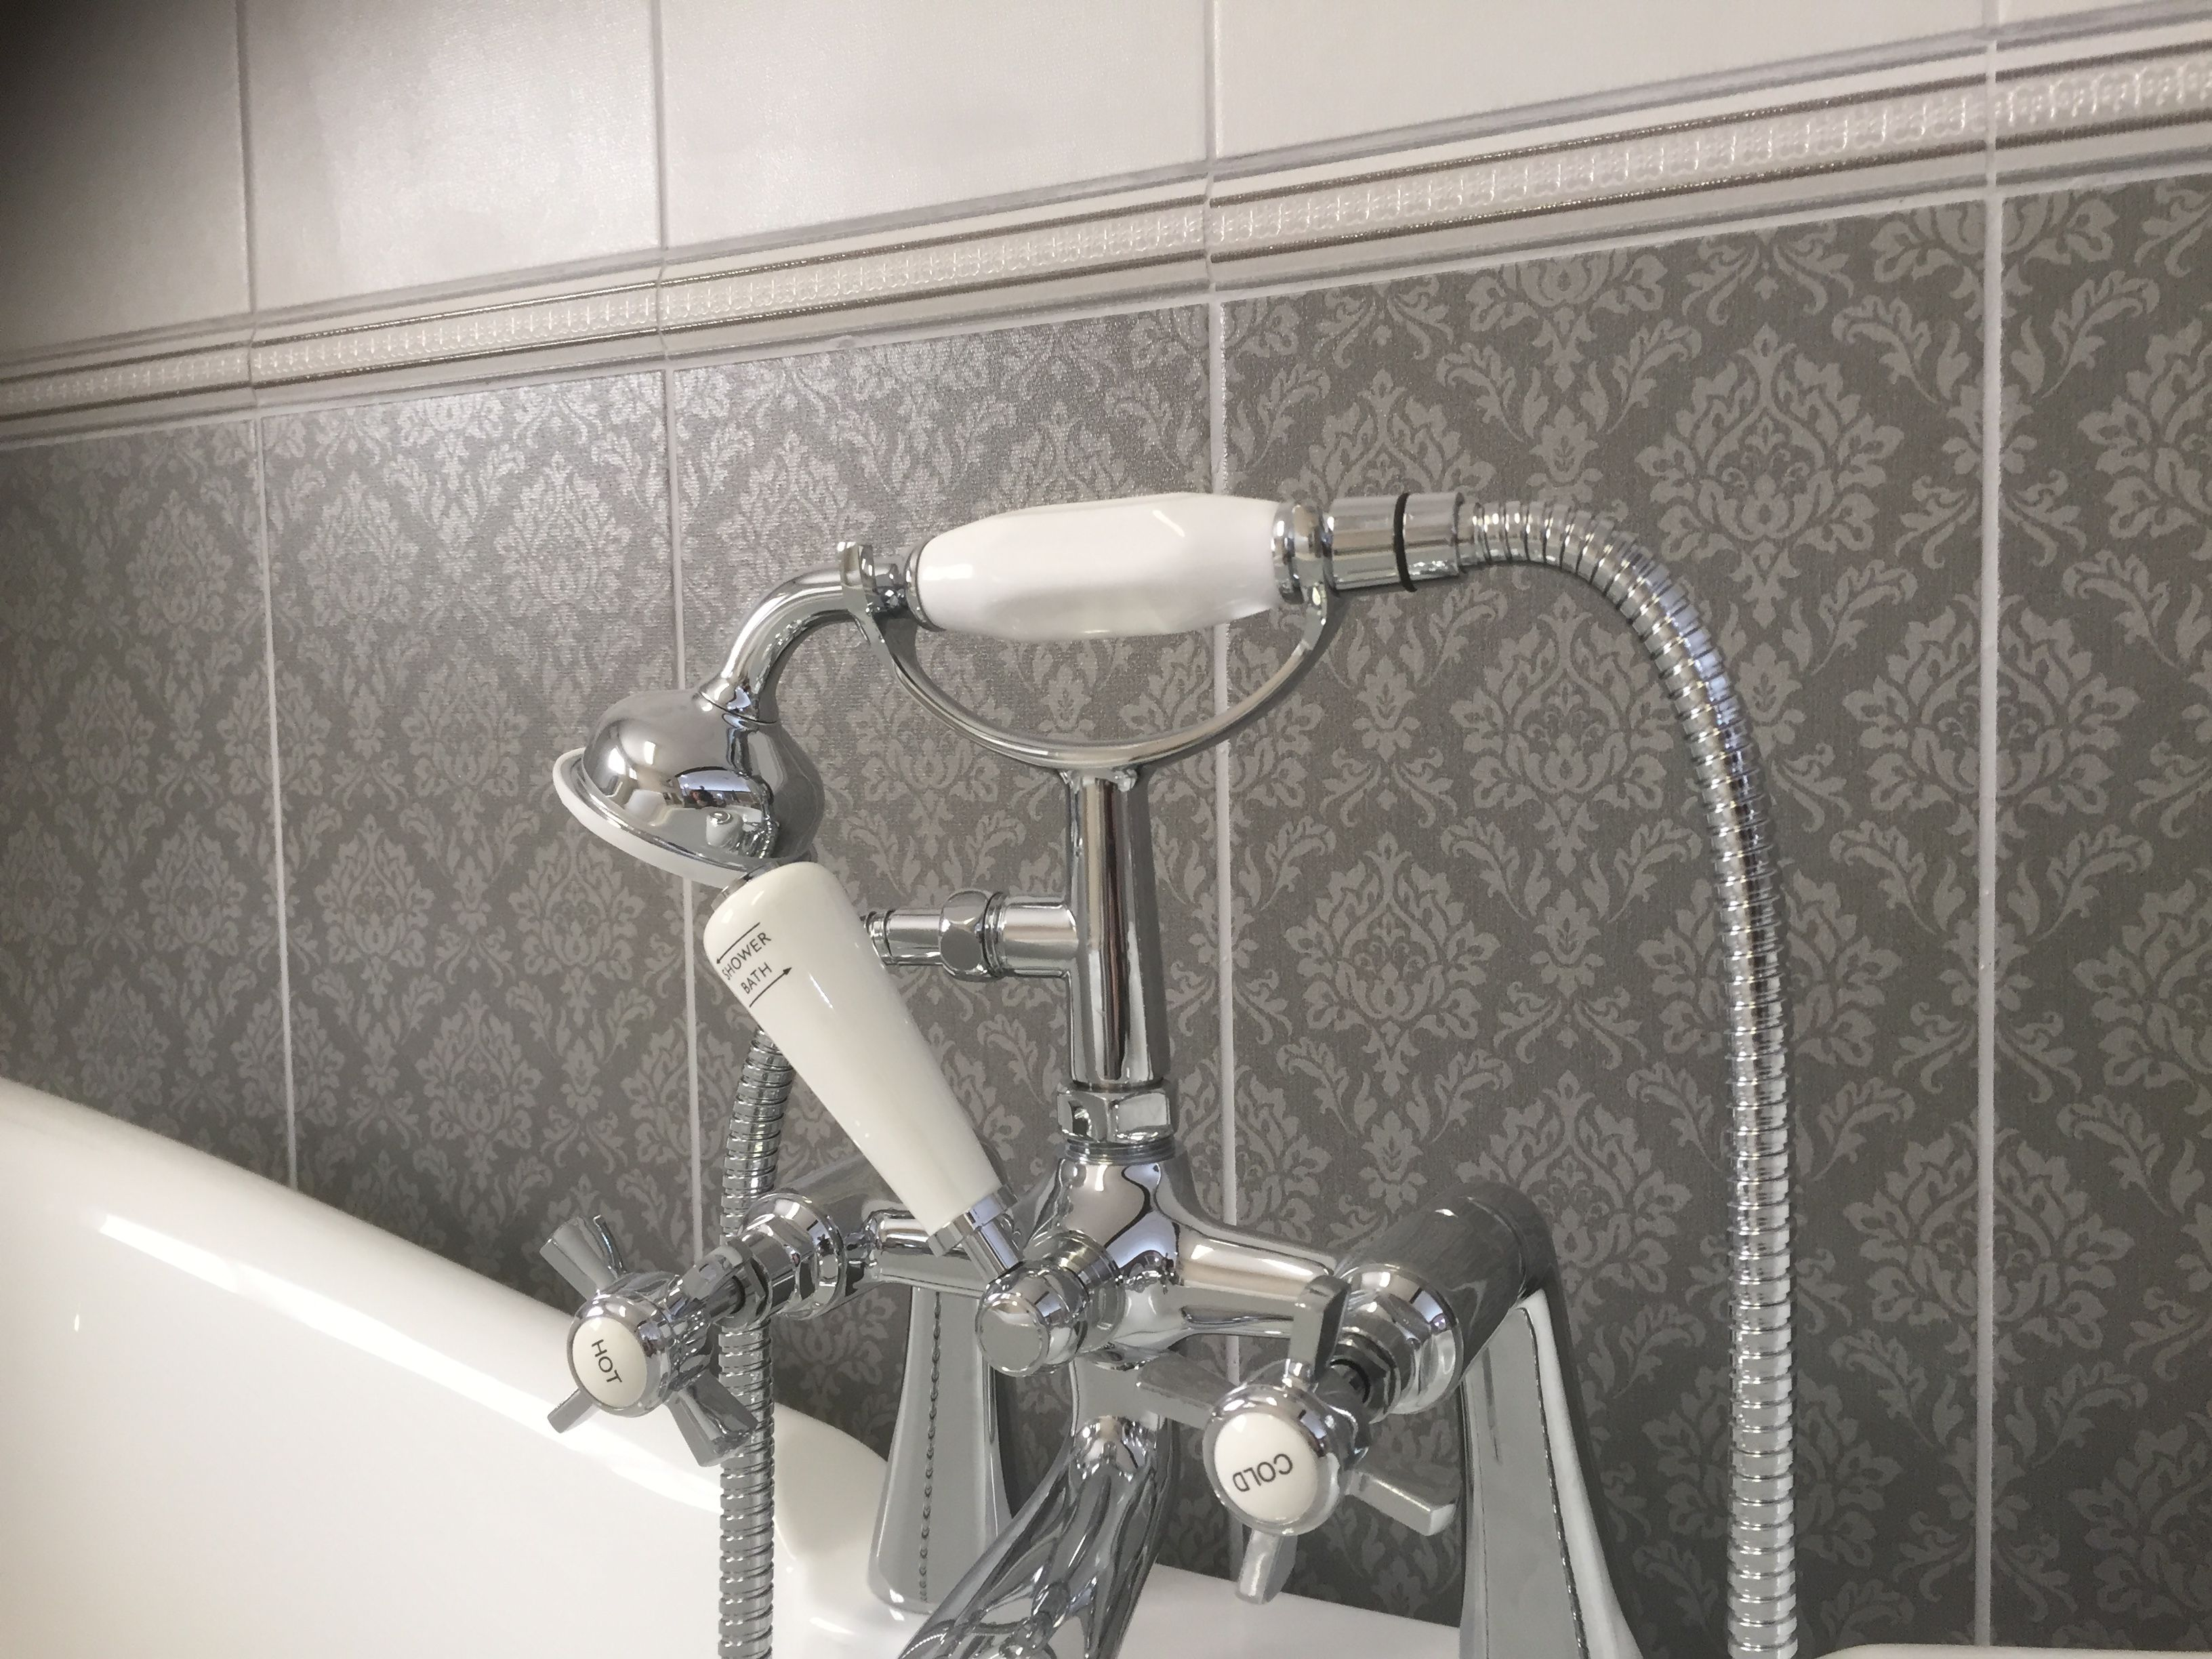 This wallpaper look feature tile compliments the antique telephone ...